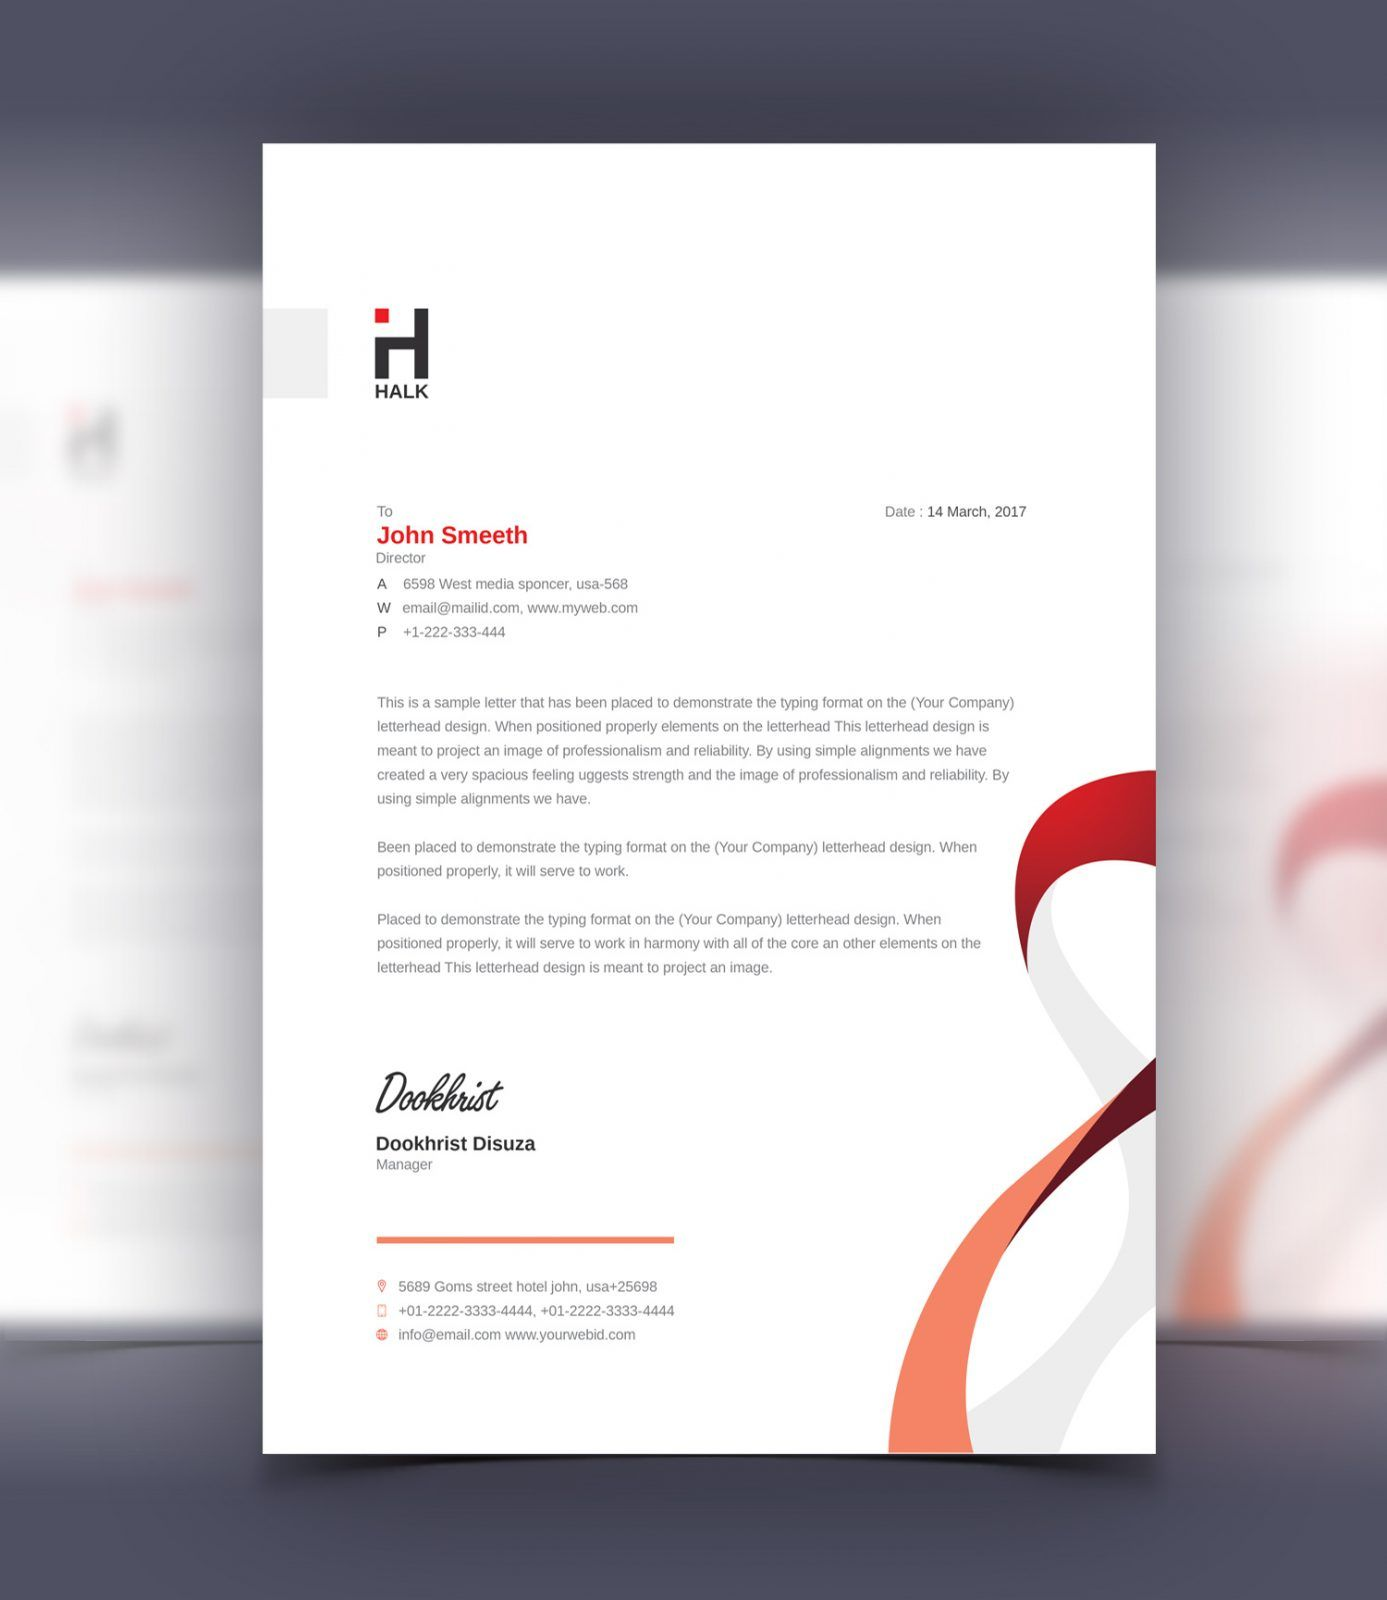 Elegant Professional Corporate Letterhead Template 000890: Aeolus Professional Corporate Letterhead Template 001024